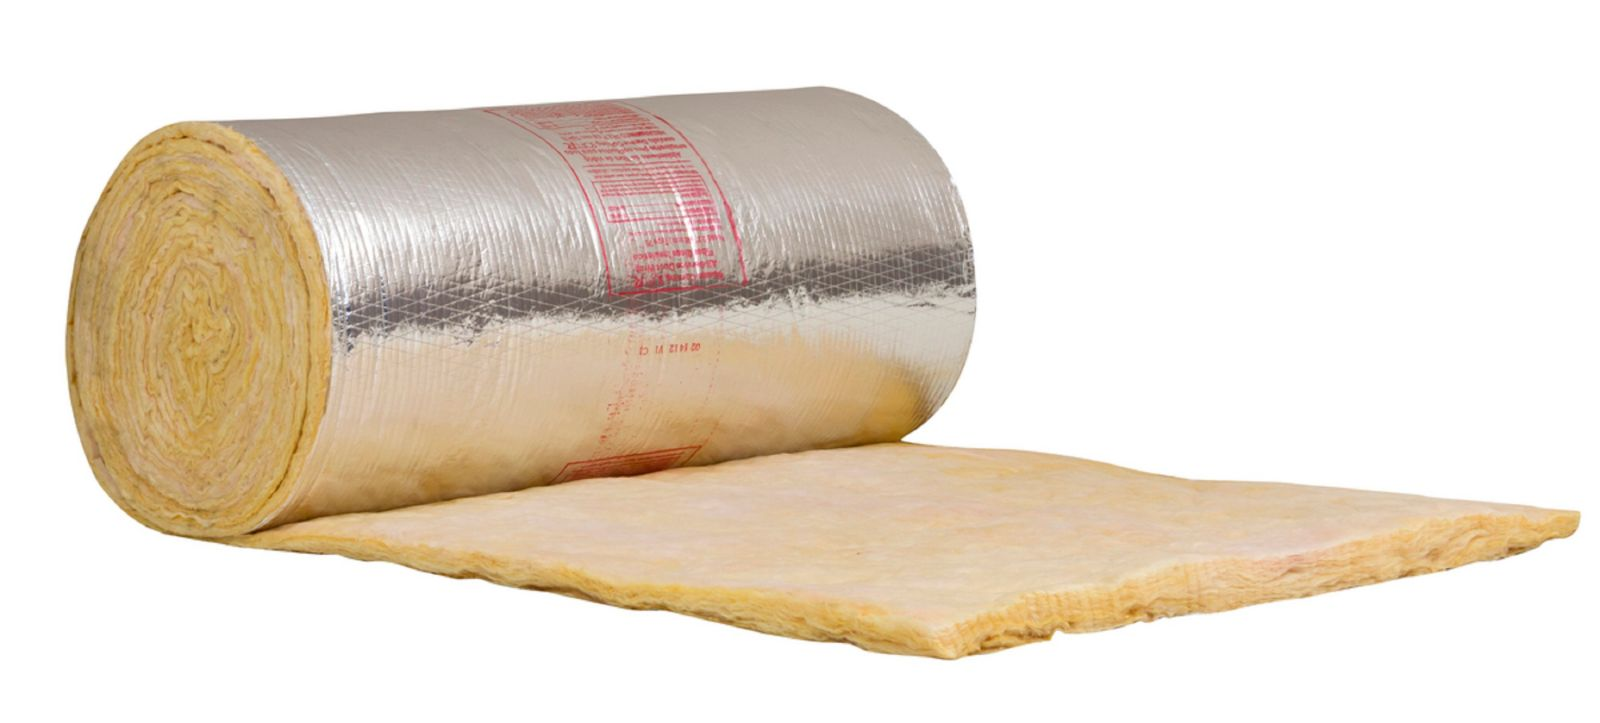 Owens corning t075 frk duct wrap roll 22 x 48 x 75 carrier hvac tools and links publicscrutiny Images